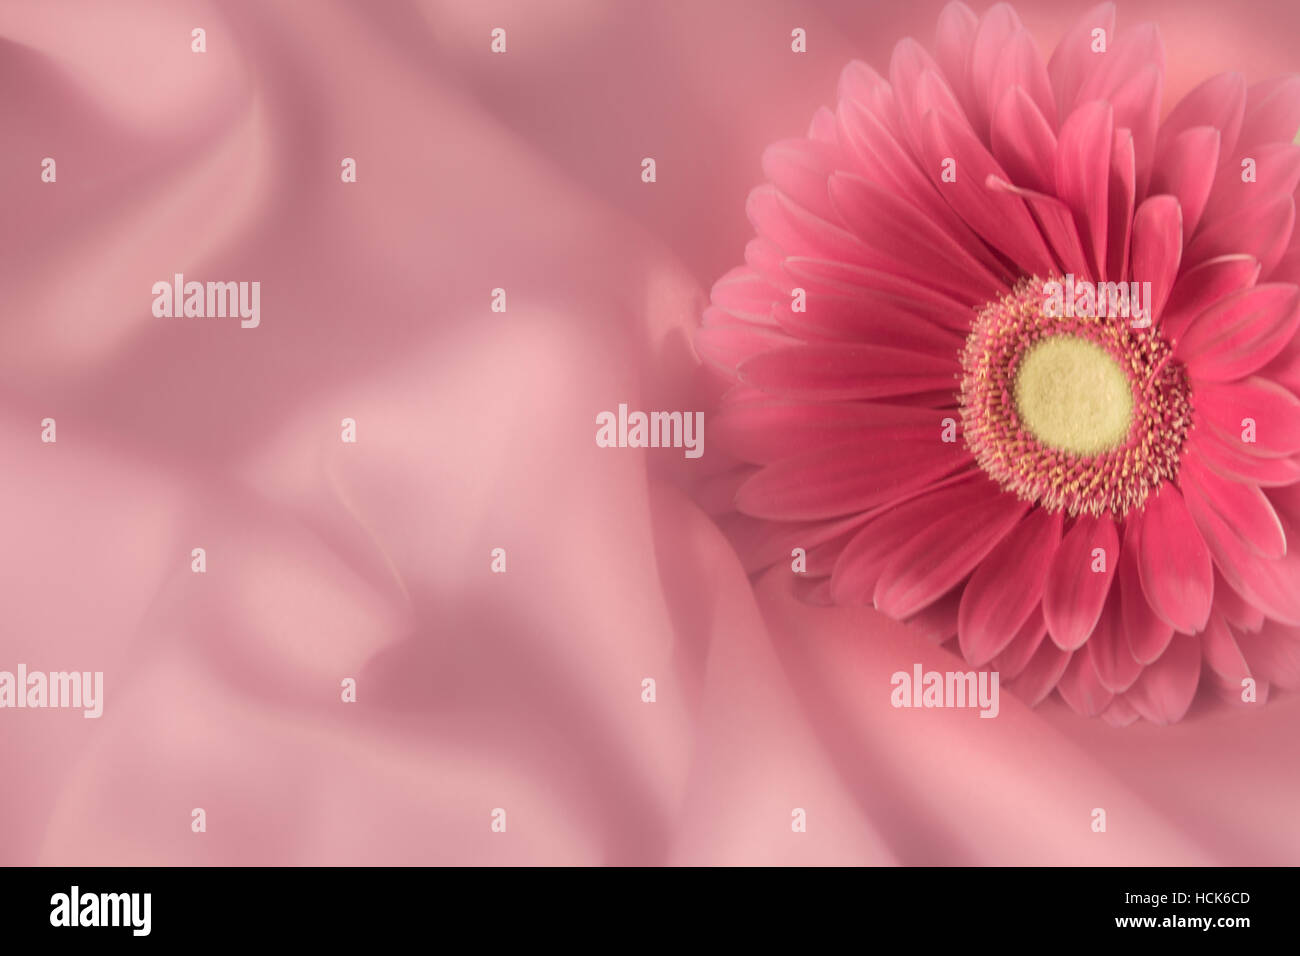 March birth flower stock photos march birth flower stock images one gerbera flower on a background from silk color fabric stock image izmirmasajfo